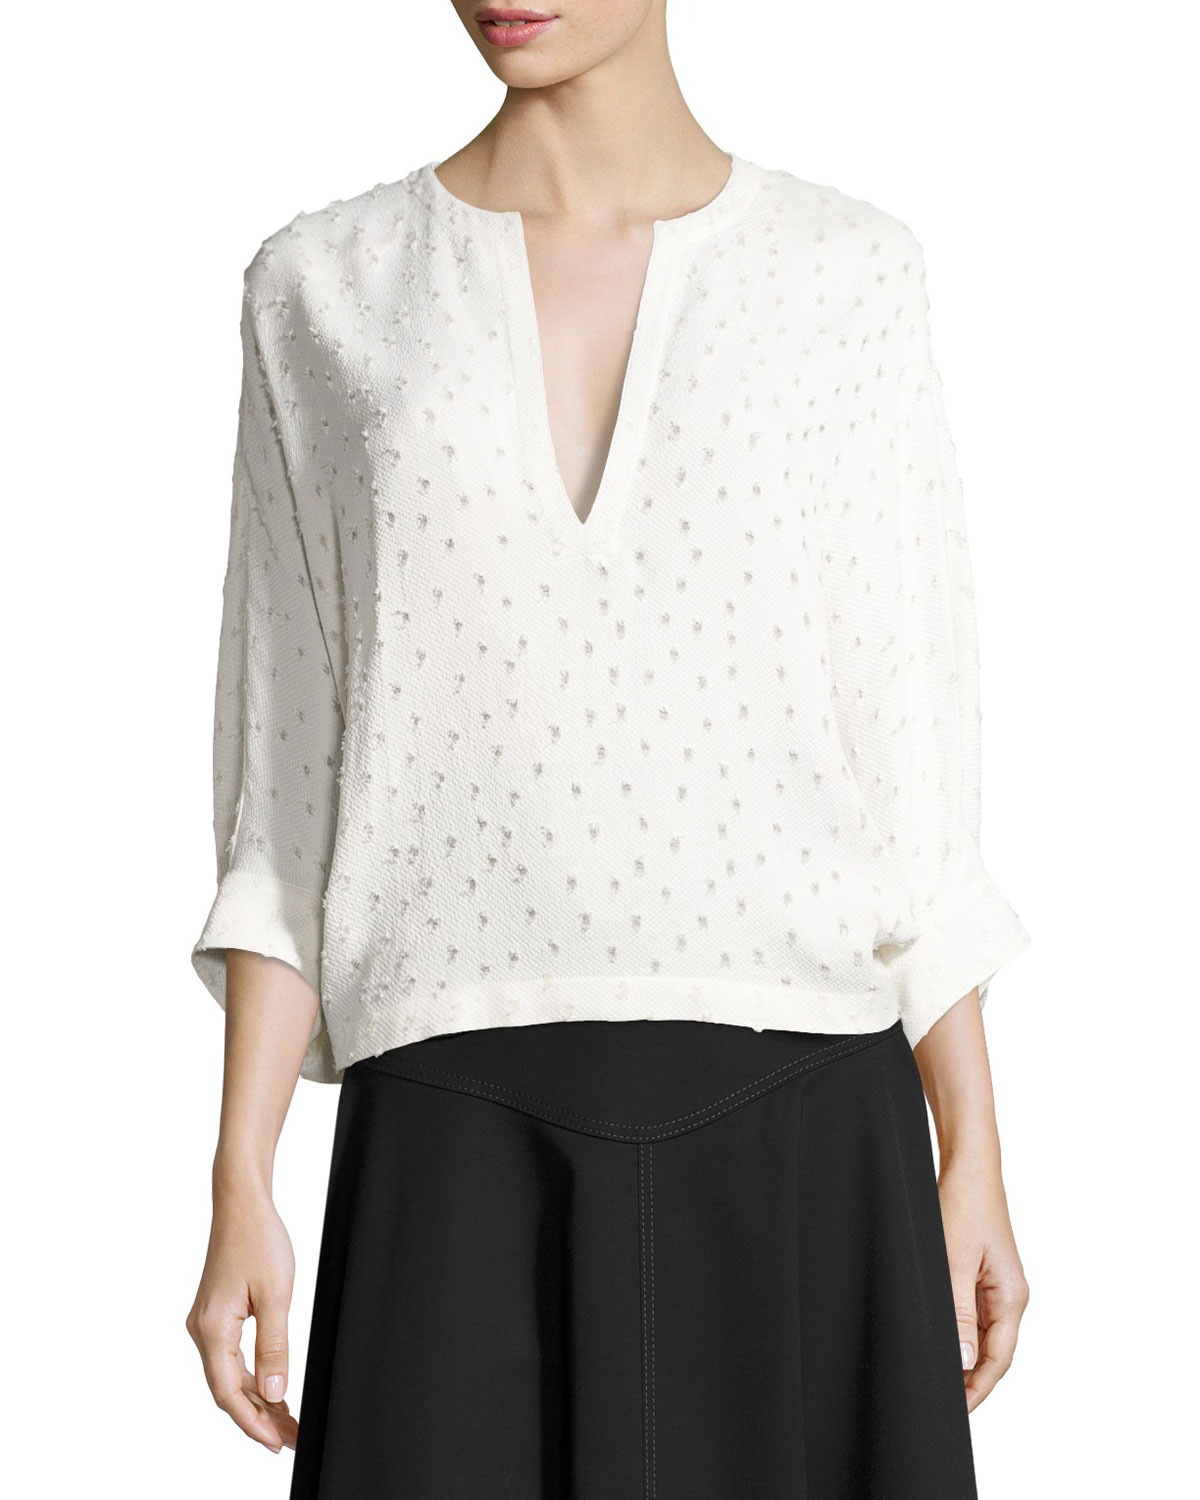 Swiss-Dot Batwing-Sleeve Blouse, White